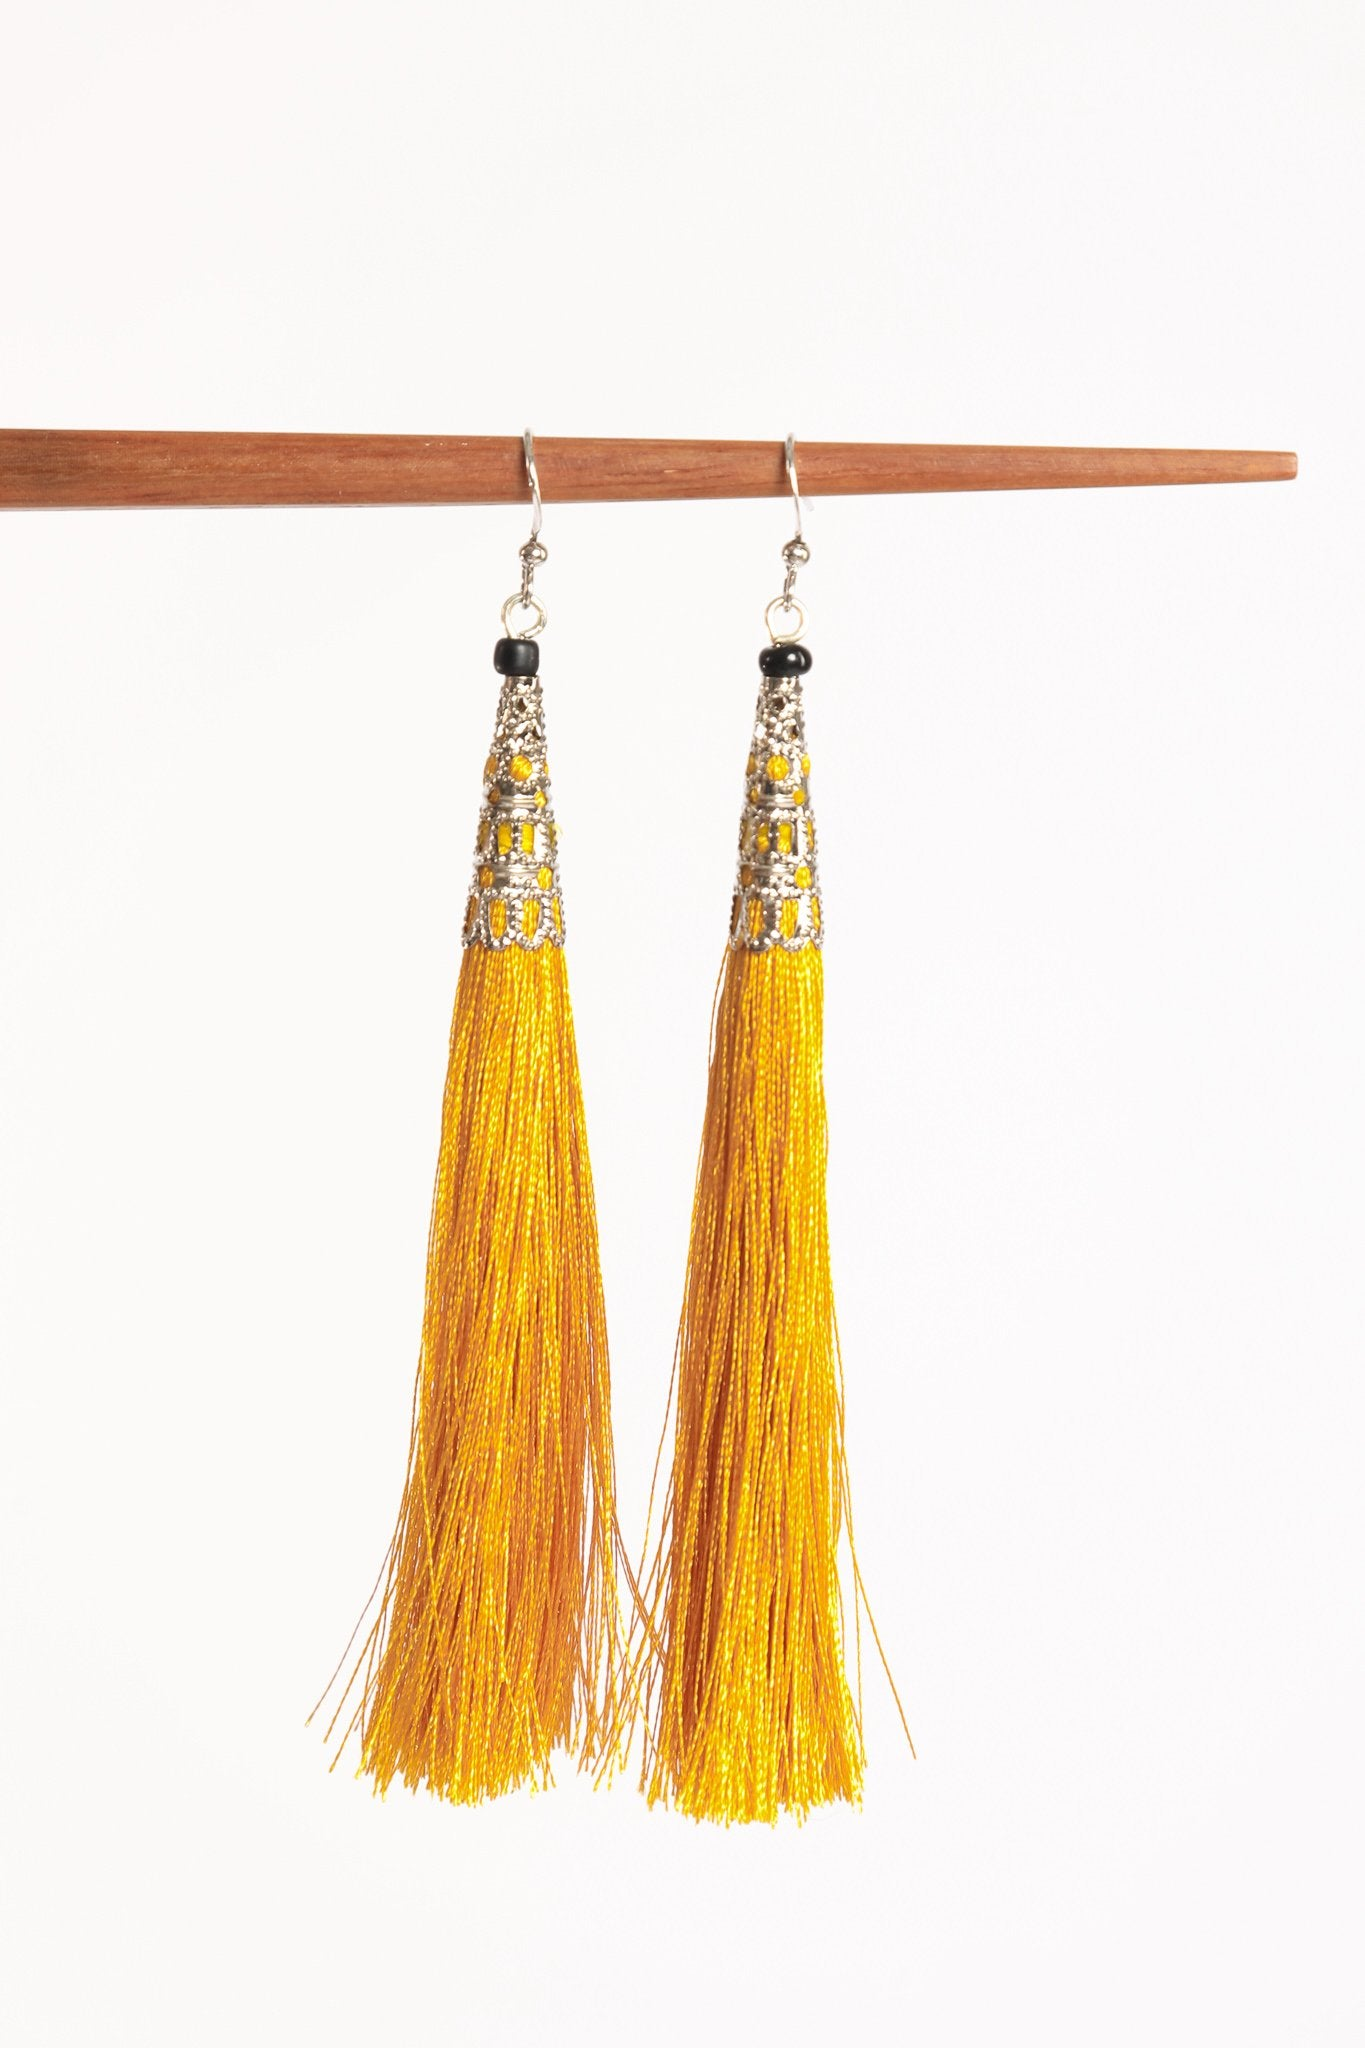 Yadana Arrow Tassel Earrings - Mustard Yellow - Our Barehands